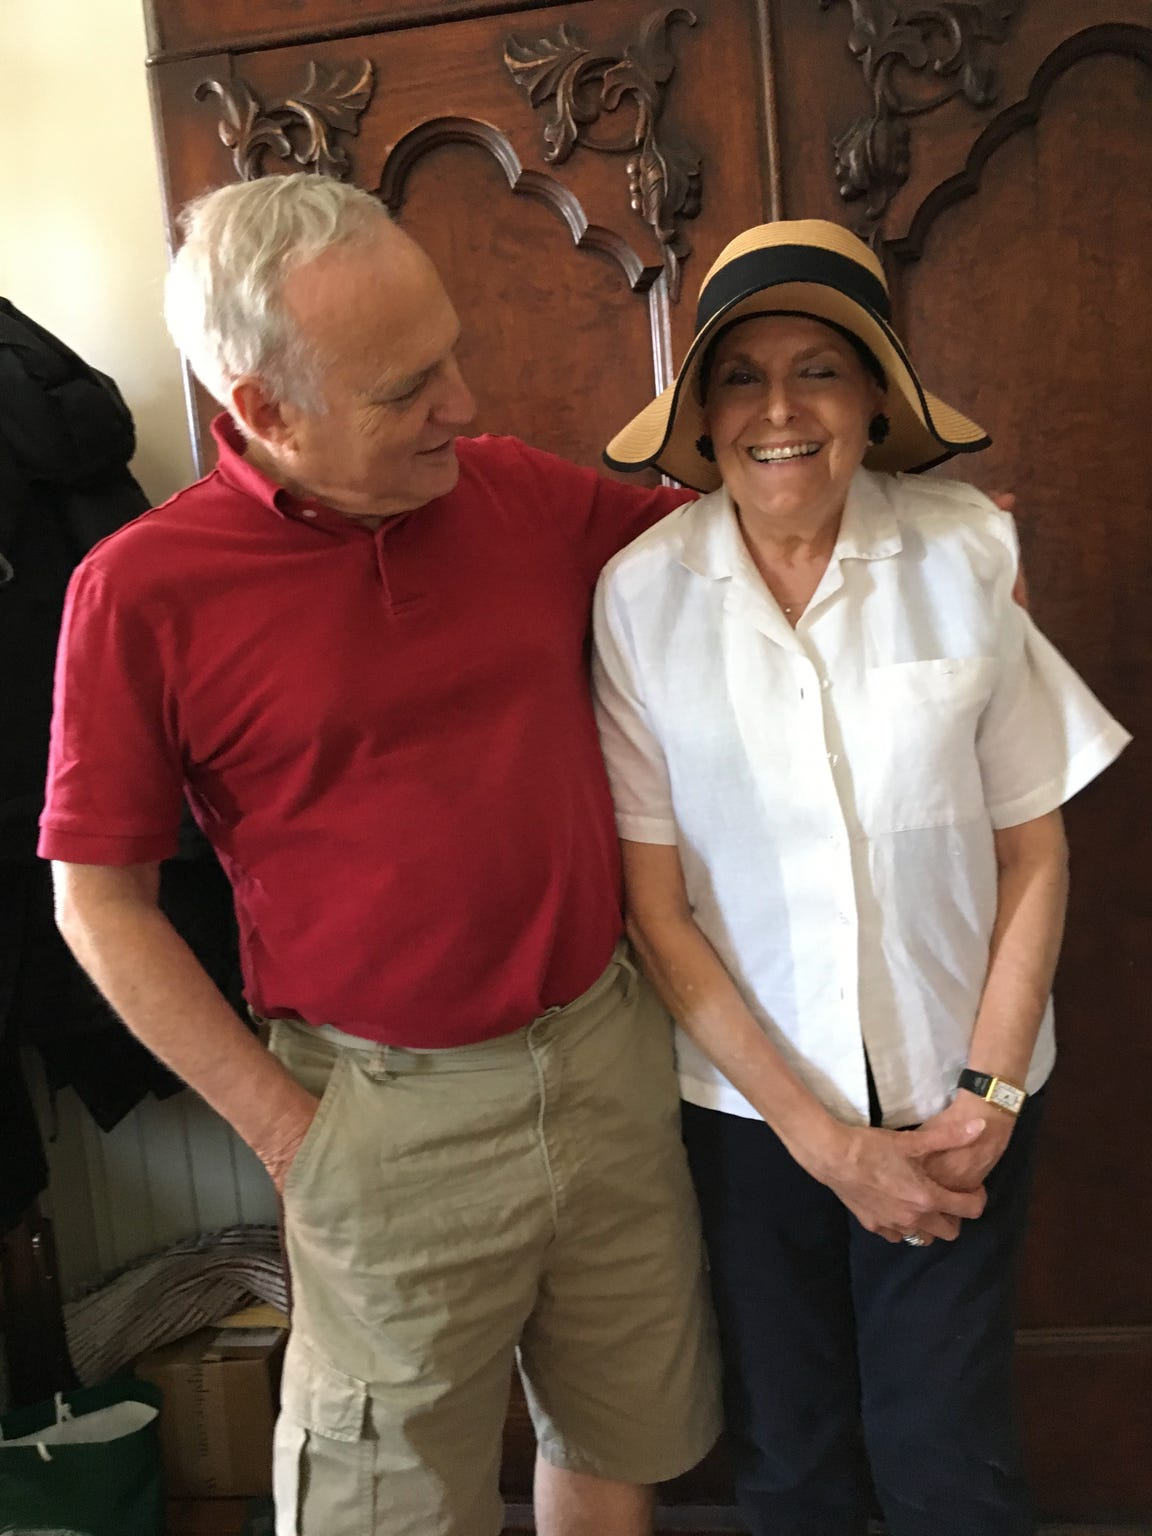 Rabbi David Saperstein and Rabbi Lynne Landsberg at Landsberg's home in Staunton on July 4, 2017. Saperstein served as U.S. Ambassador for International Religious Freedom during President Obama's administration and was the former Director of the Religious Action Center of Reform Judaism in Washington, D.C. On July 4, he spoke at the 55th annual Independence Day Celebration and Naturalization Ceremony at Thomas Jefferson's Monticello and stopped by Landsberg's home for a visit on his way home.